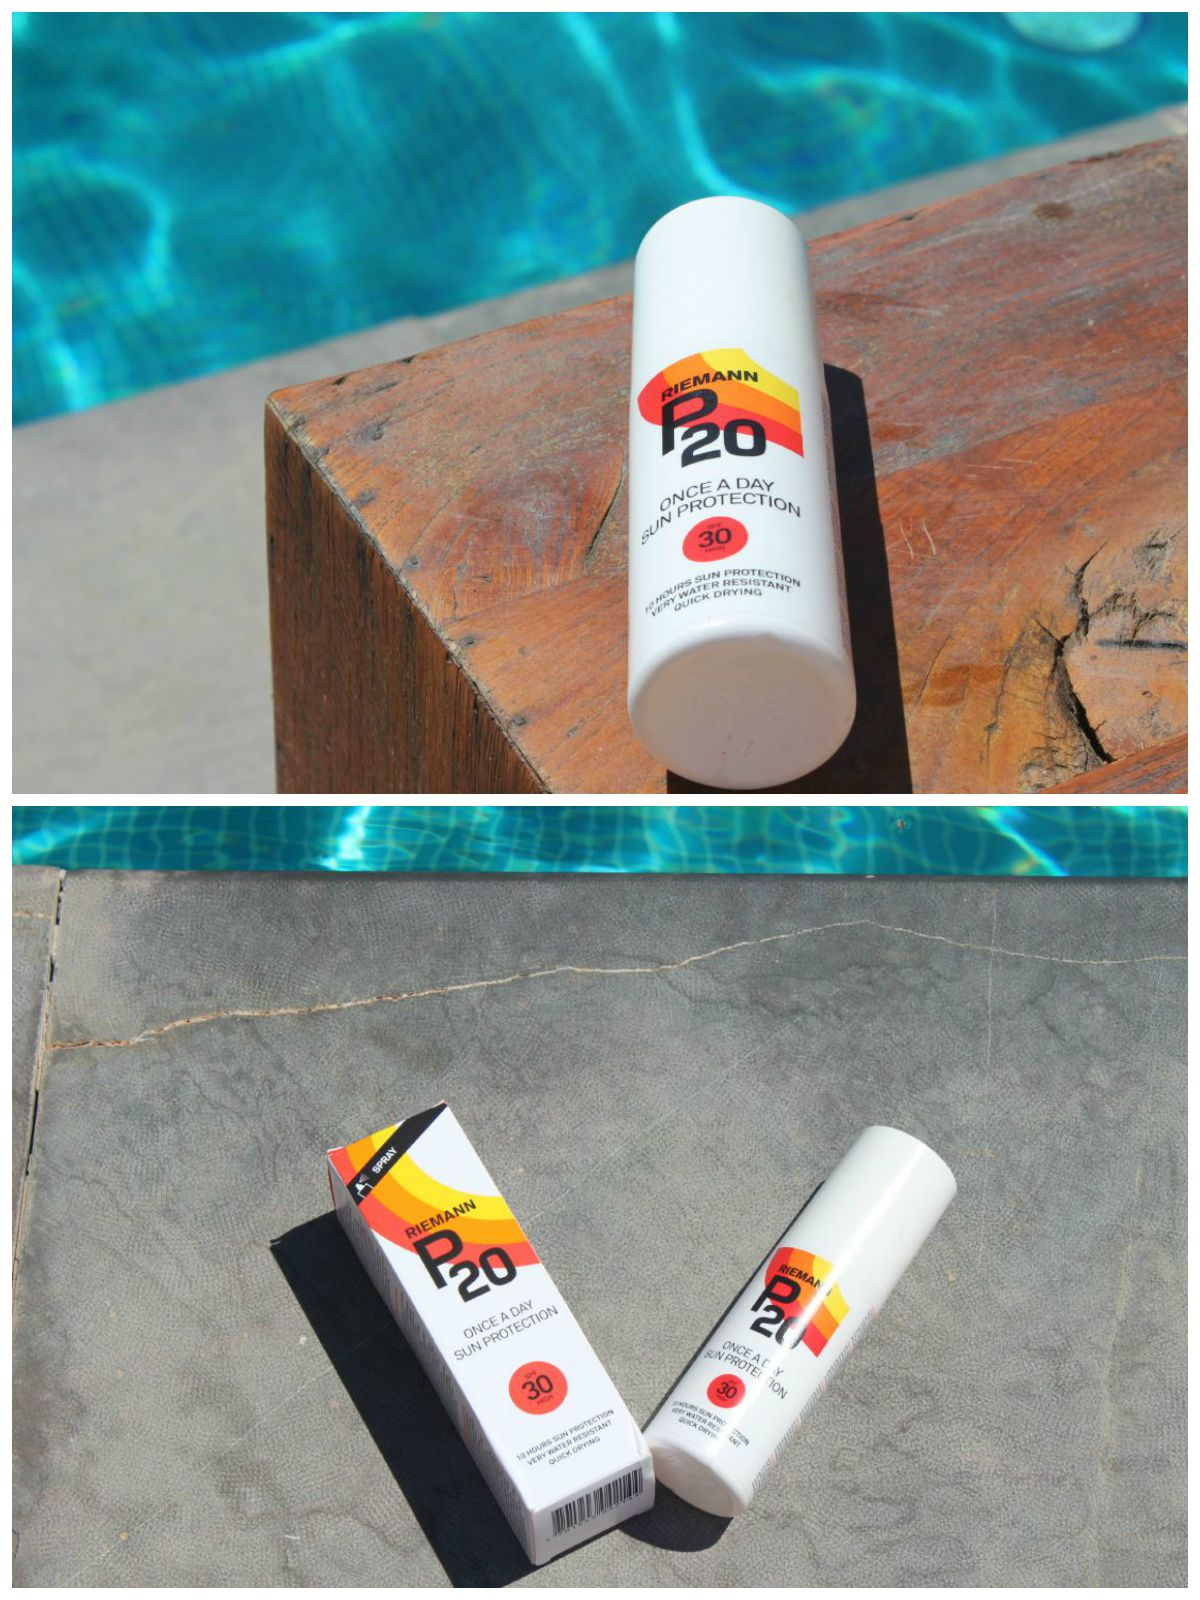 P20 Once A Day Sun Protection SPF30